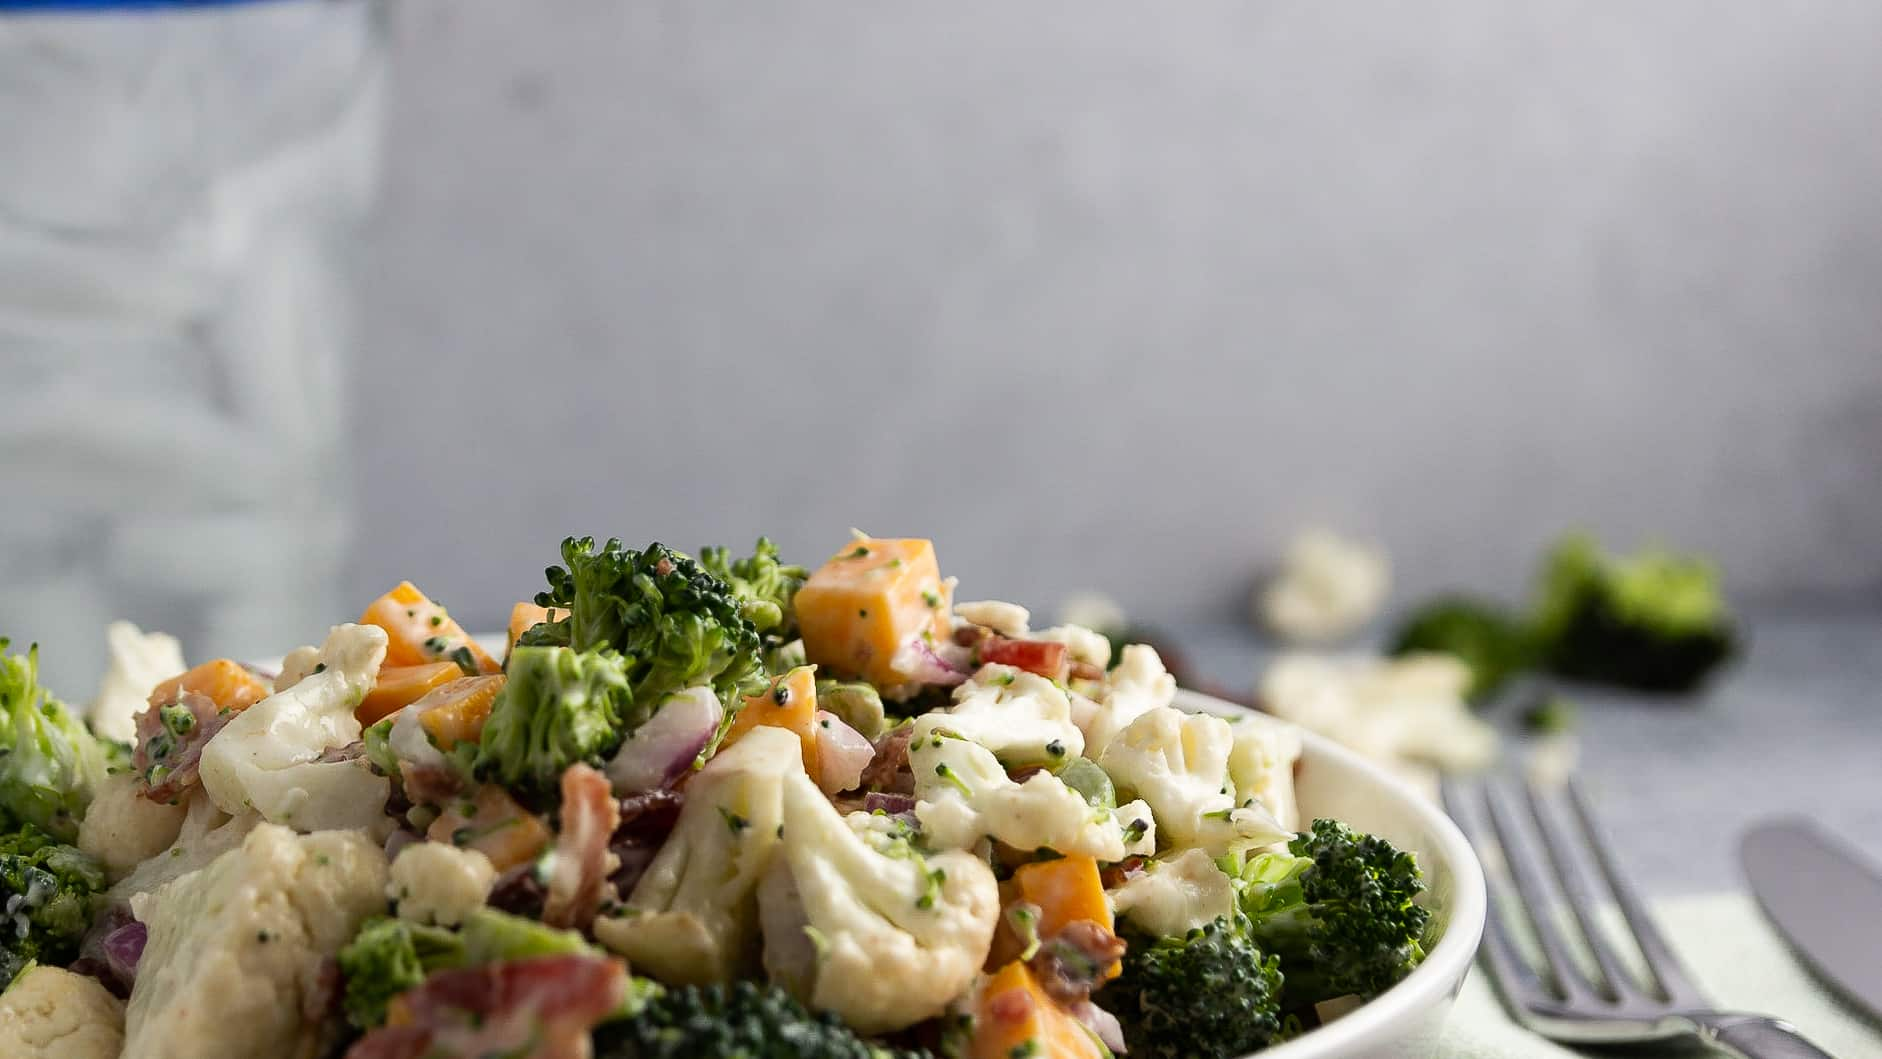 A bowl of cold broccoli cauliflower salad.